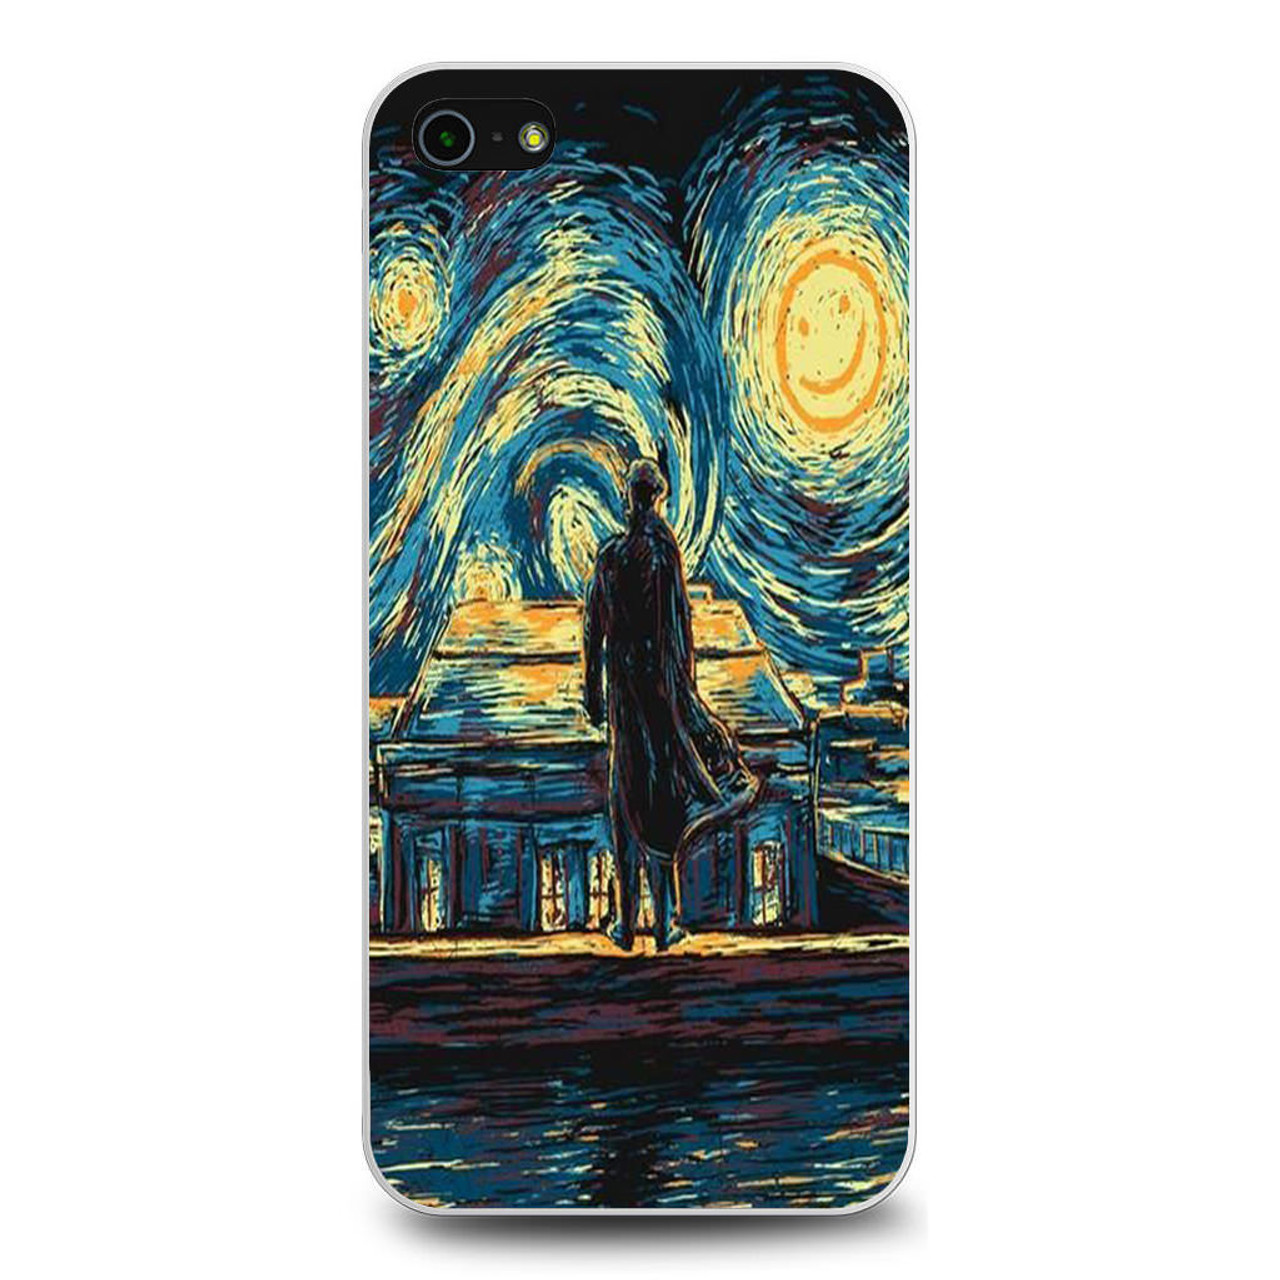 Starry Fall (Sherlock) iphone 11 case